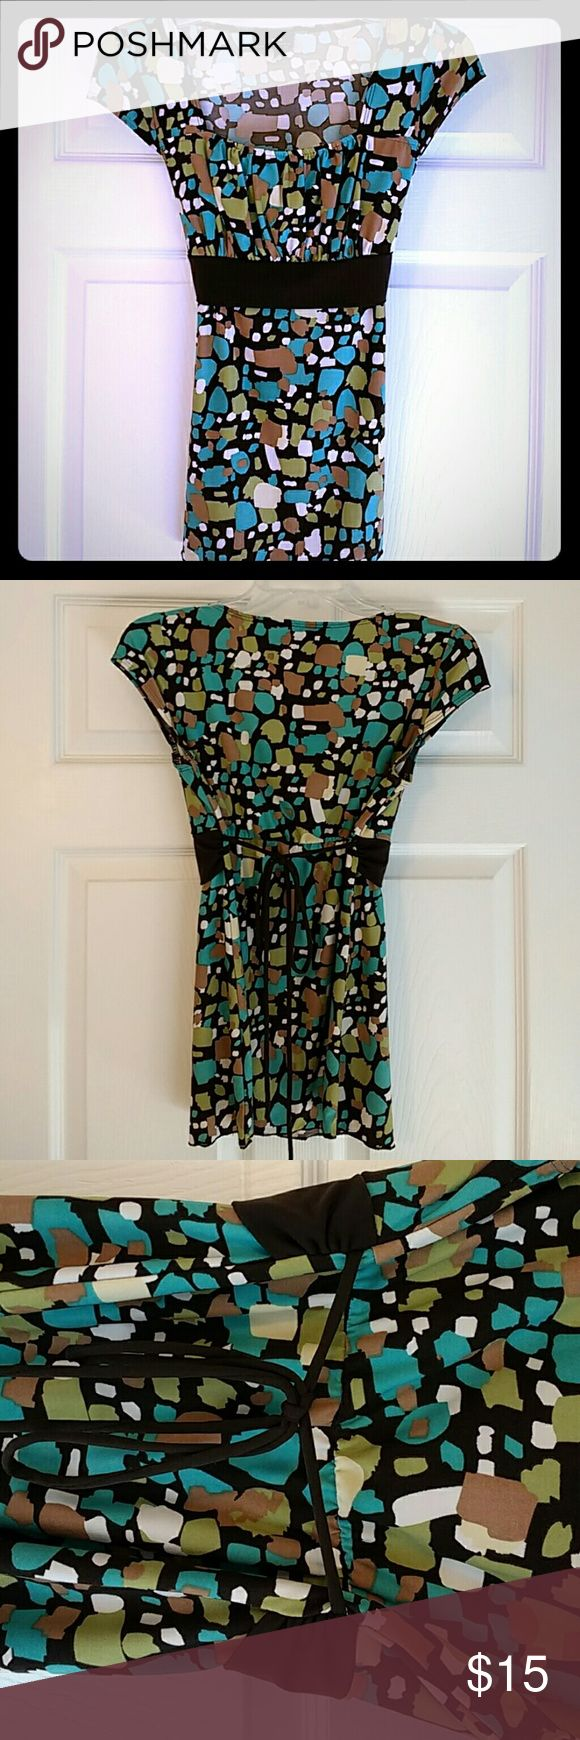 Modern geomeyric Short sleeve top Small Polyester. Brown, beige, teal, green and cream pattern Byer california Tops Blouses